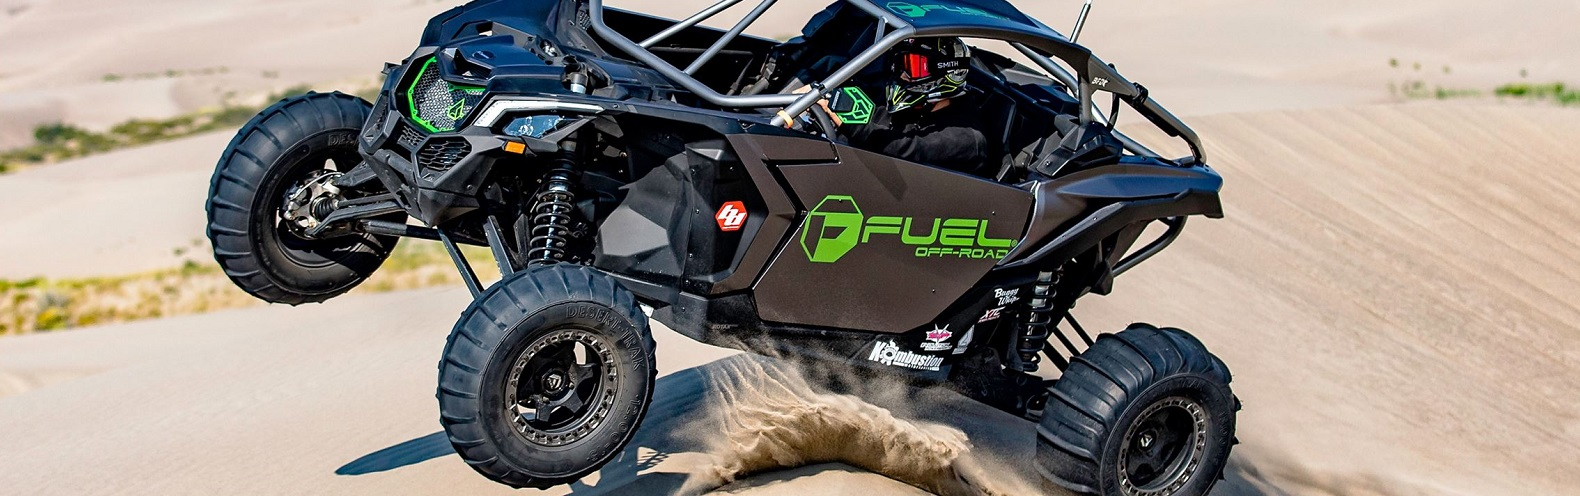 fuel-utv-category-banner.jpg